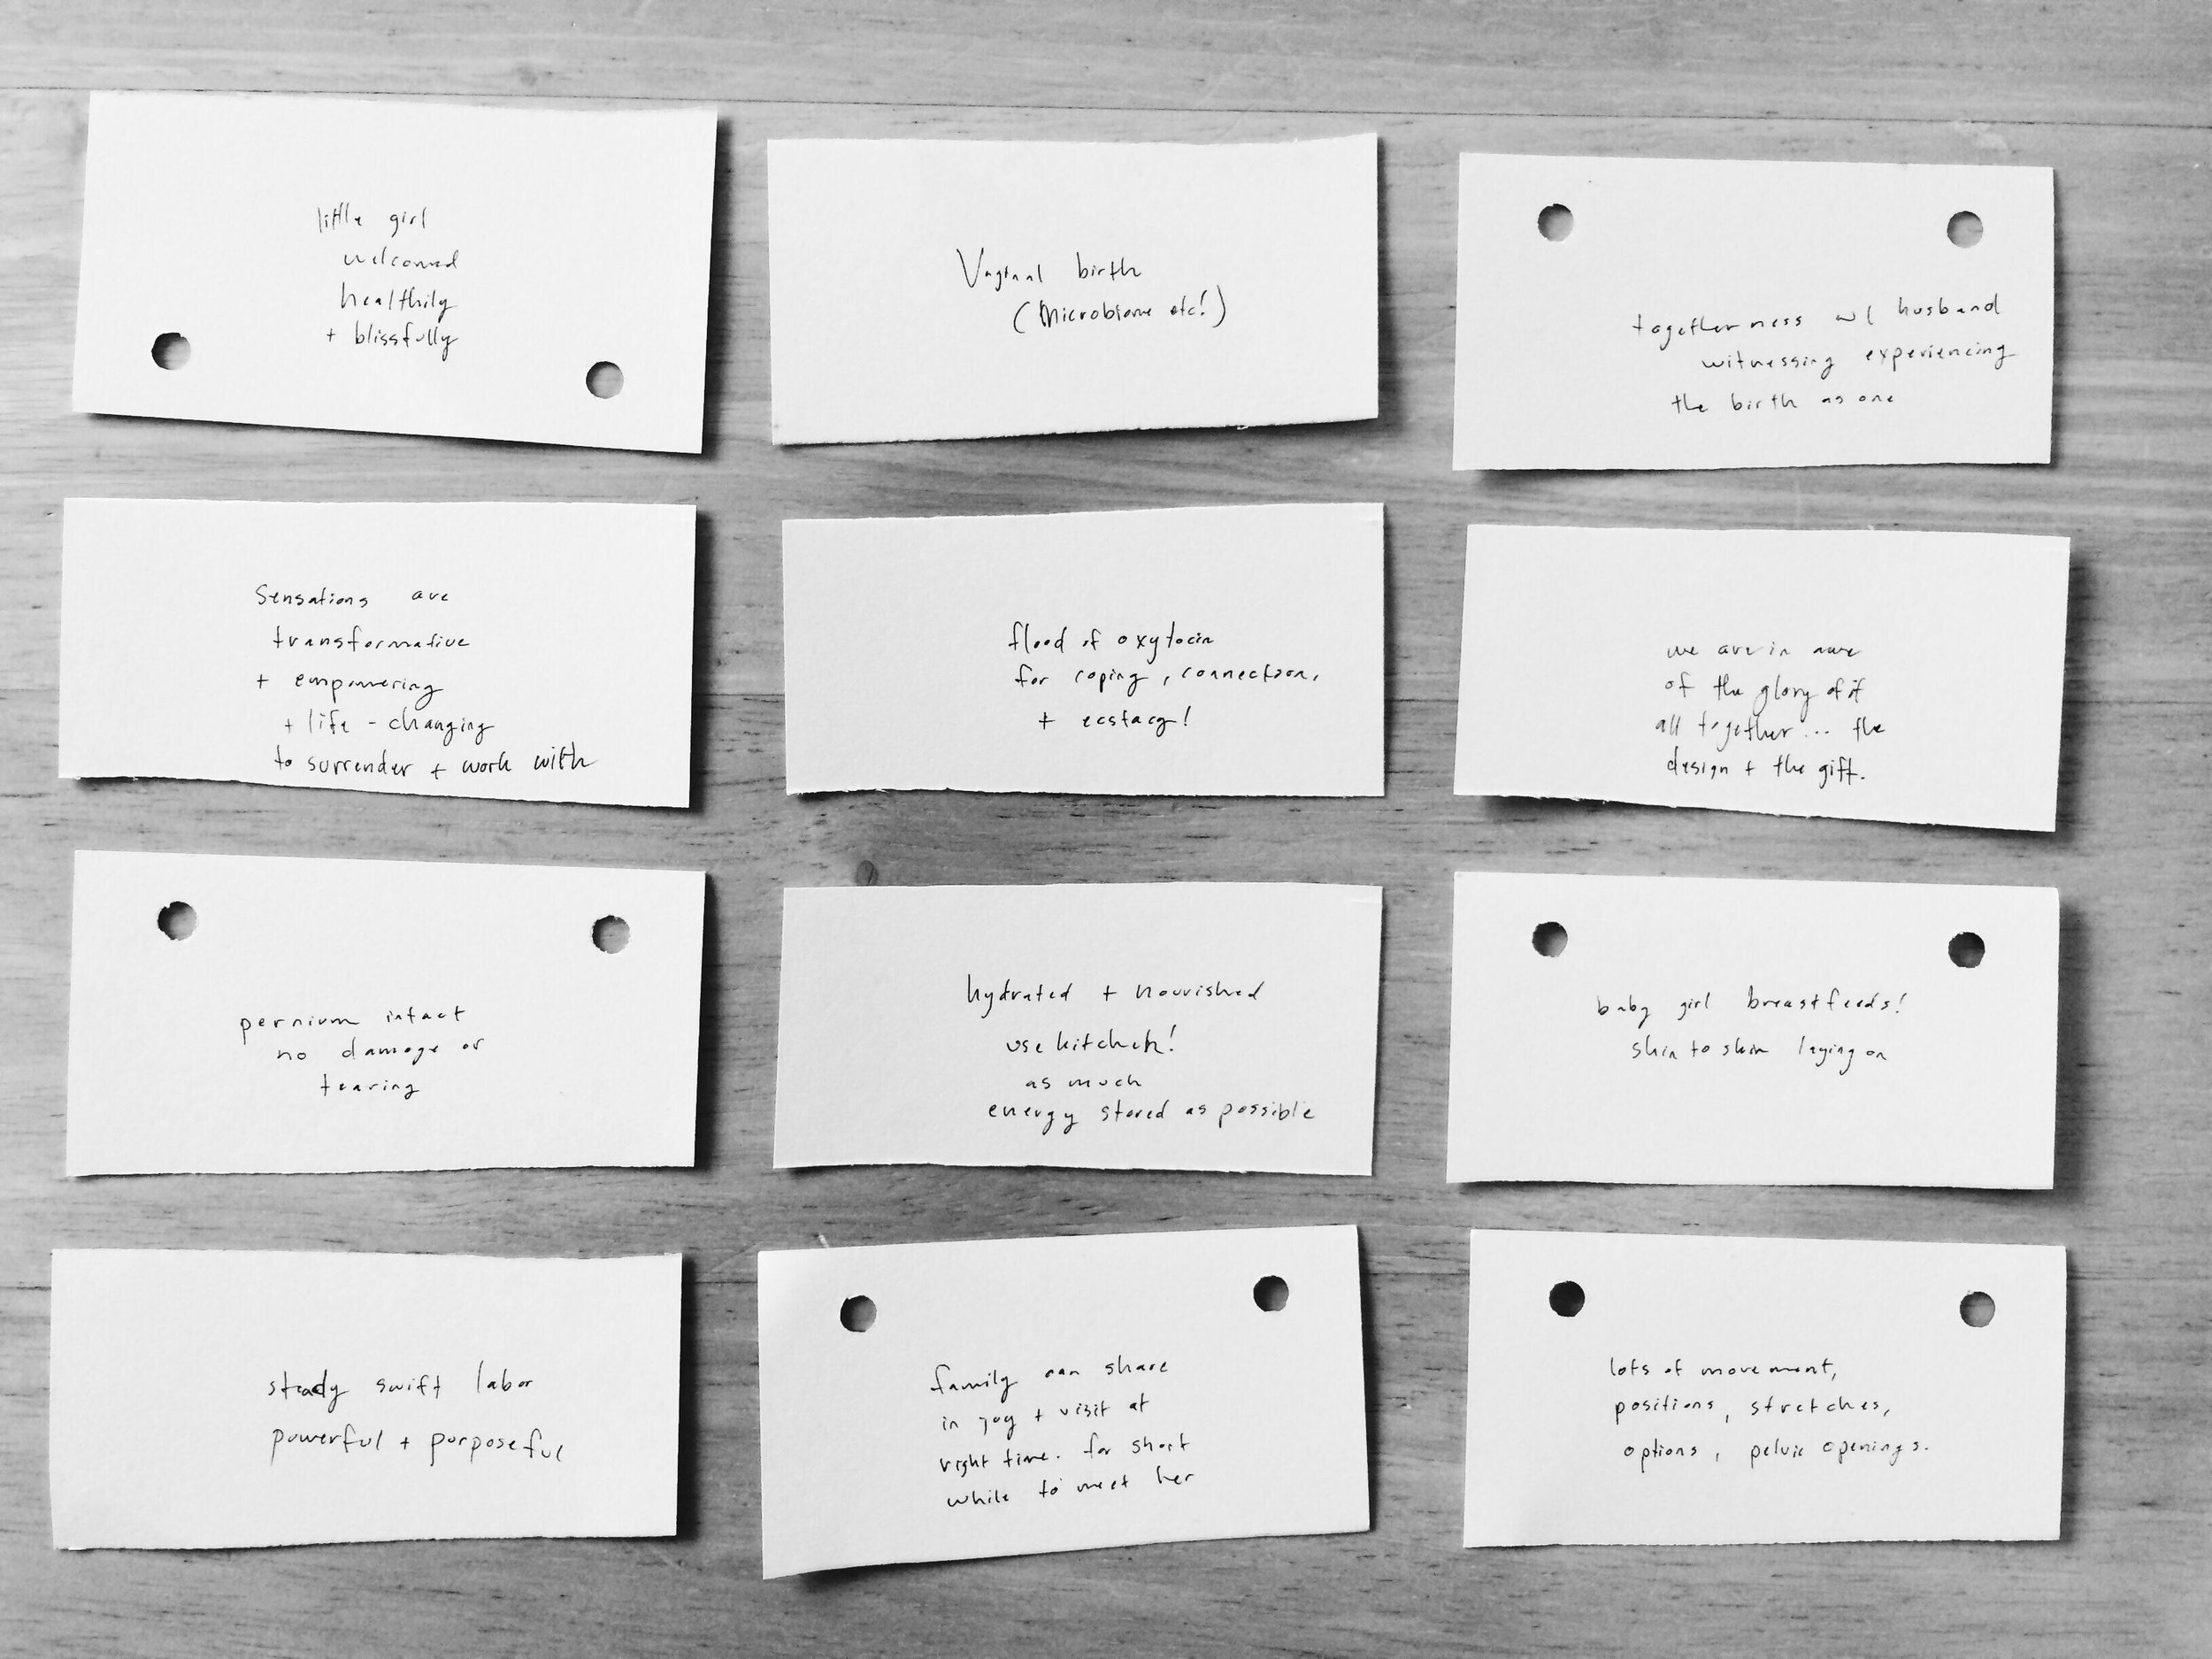 """In our prenatal group they had us take twelve scraps of paper and write down a """"birth intention"""" on each one. Then one by one we were instructed to set the least desired ones aside until each of us were left with just three top priorities. After the exercise we discussed how we would cope and find a way to thrive if this is what actually happened."""